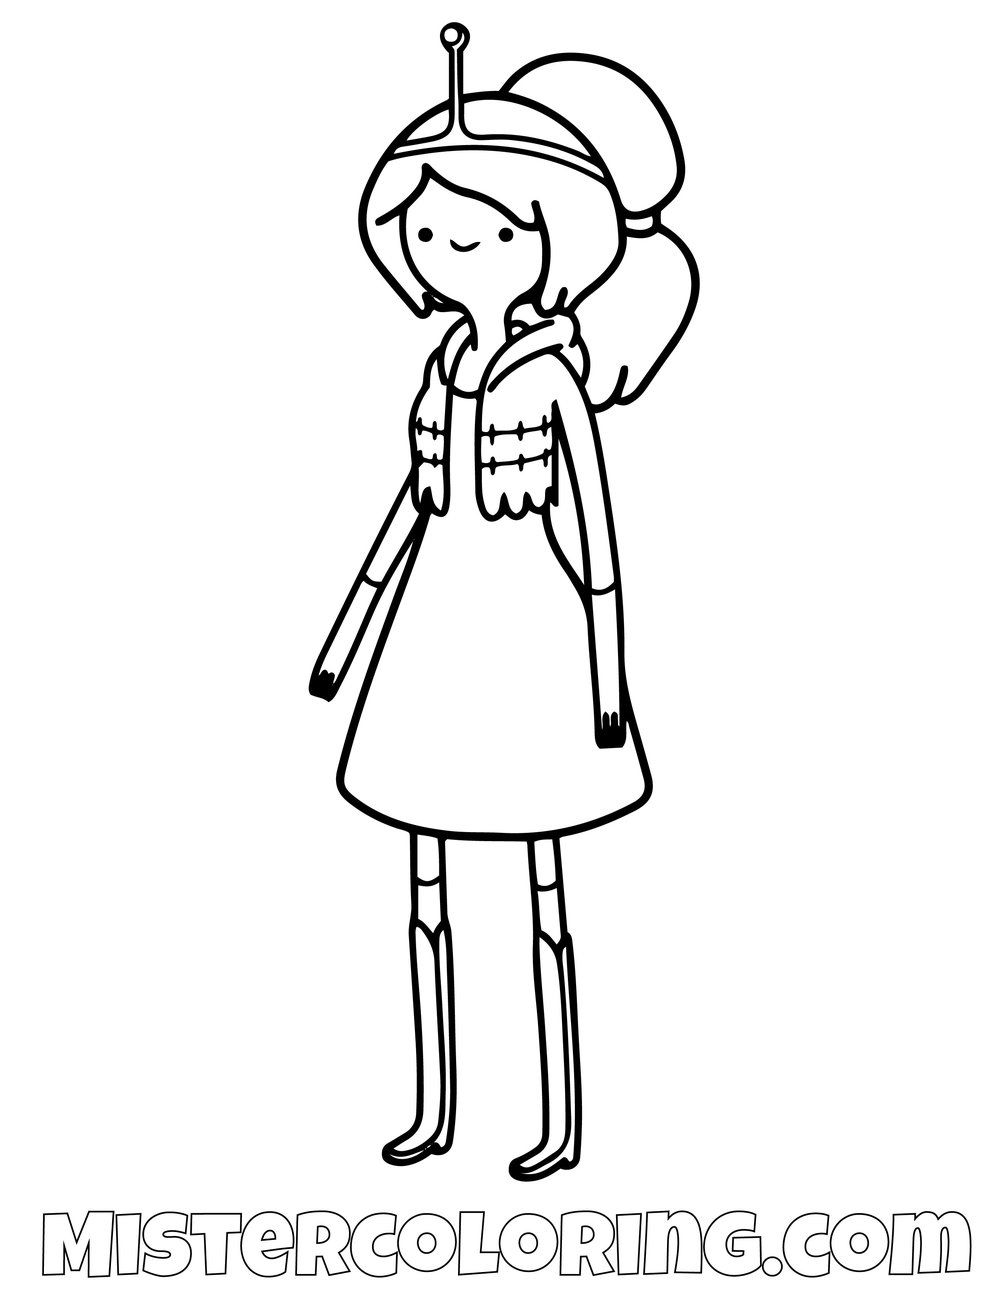 Free Princess Bubblegum Posing Adventure Time Coloring Page For